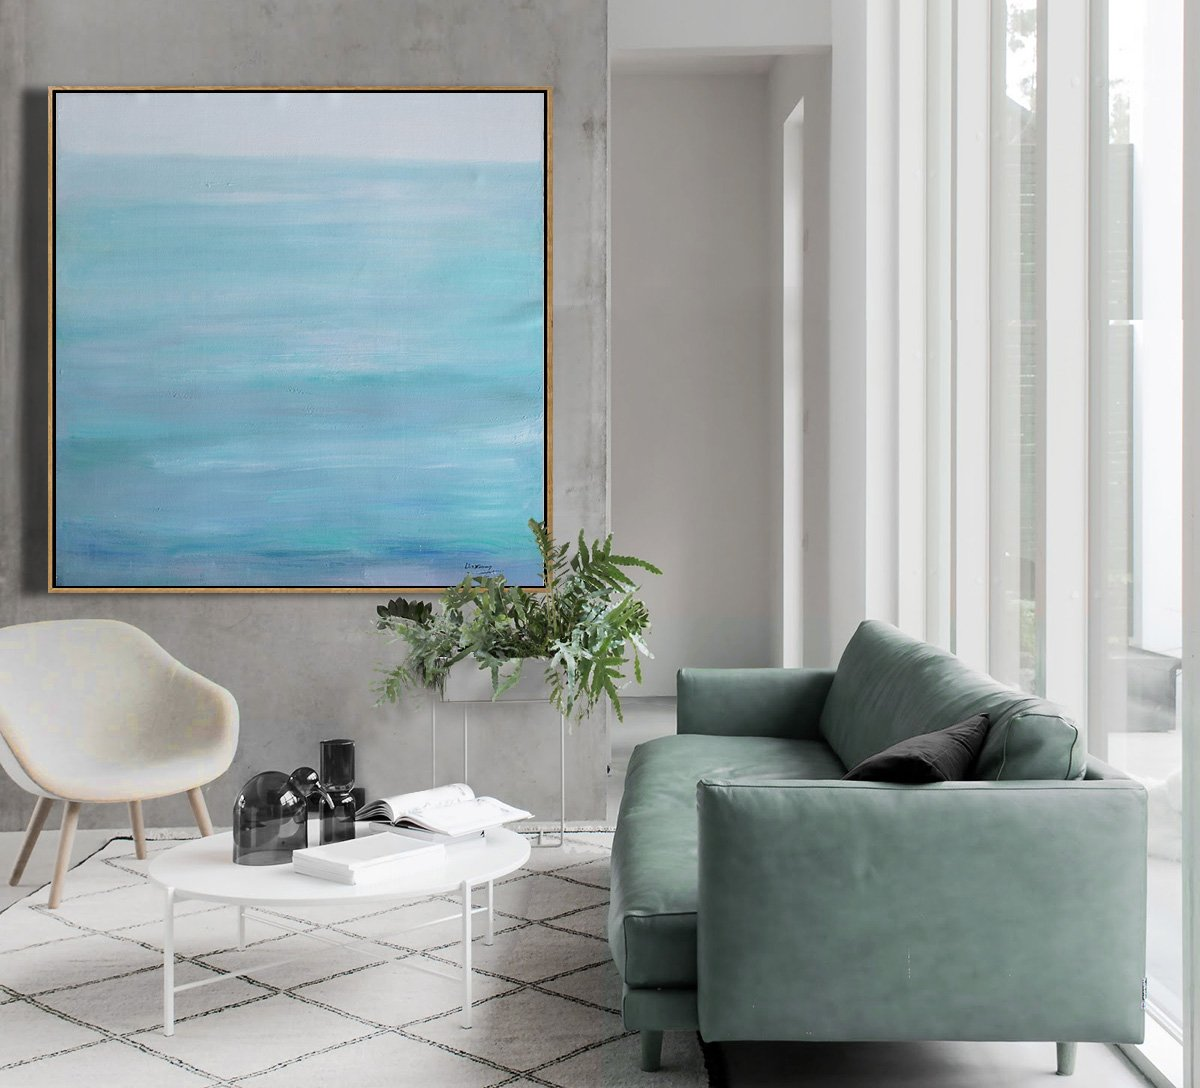 Extra Large Canvas Art,Large Abstract Landscape Oil Painting On Canvas,Large Colorful Wall Art,Grey,Lake Blue,White.etc